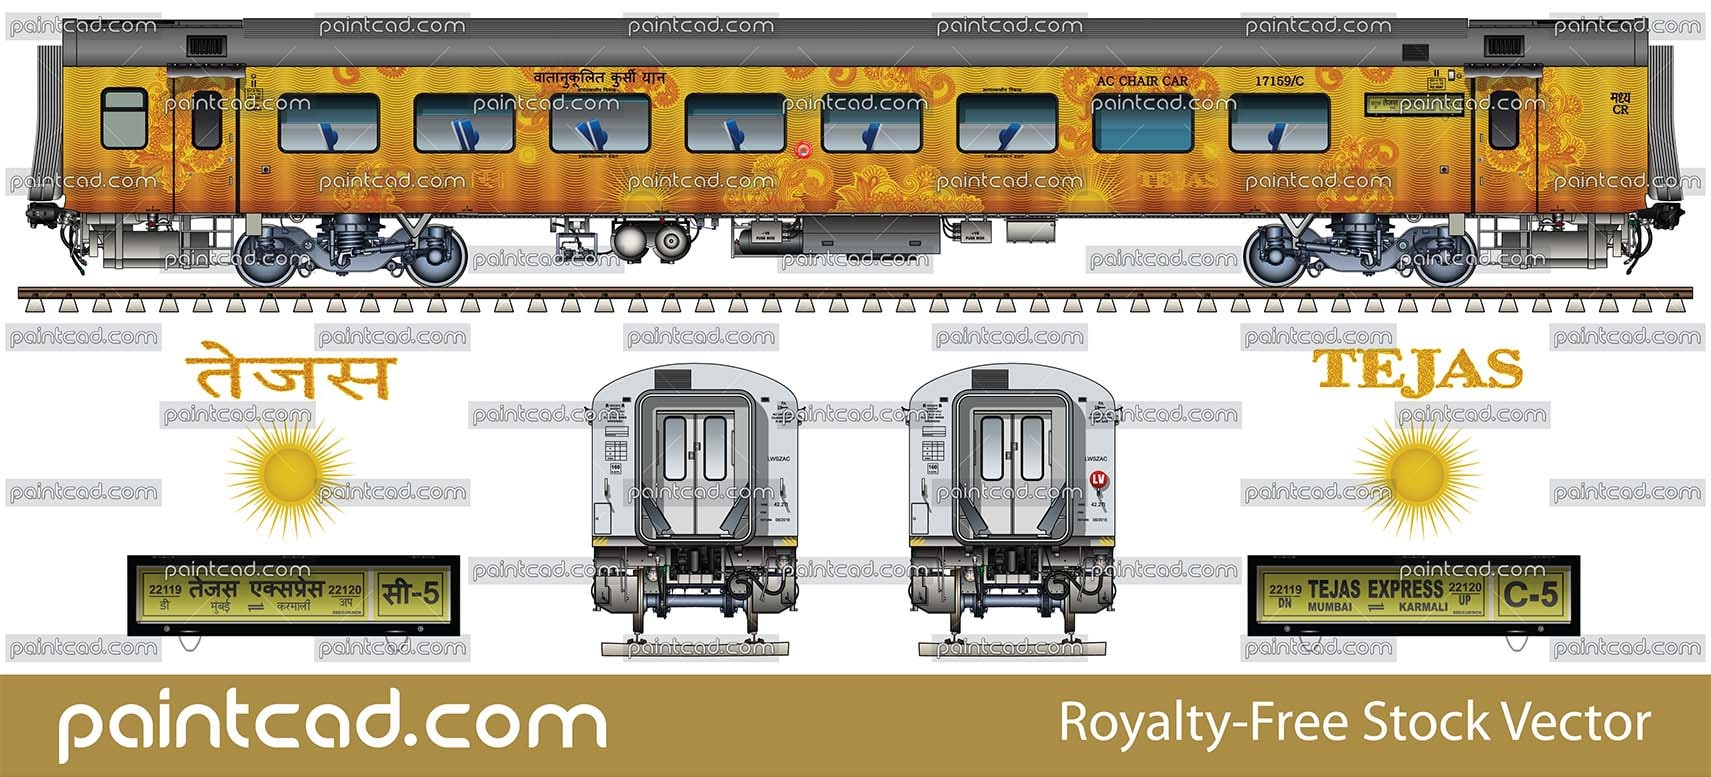 AC CHAIR CAR with 78 seats by Mumbai - Karmali Tejas Express - vector illustration